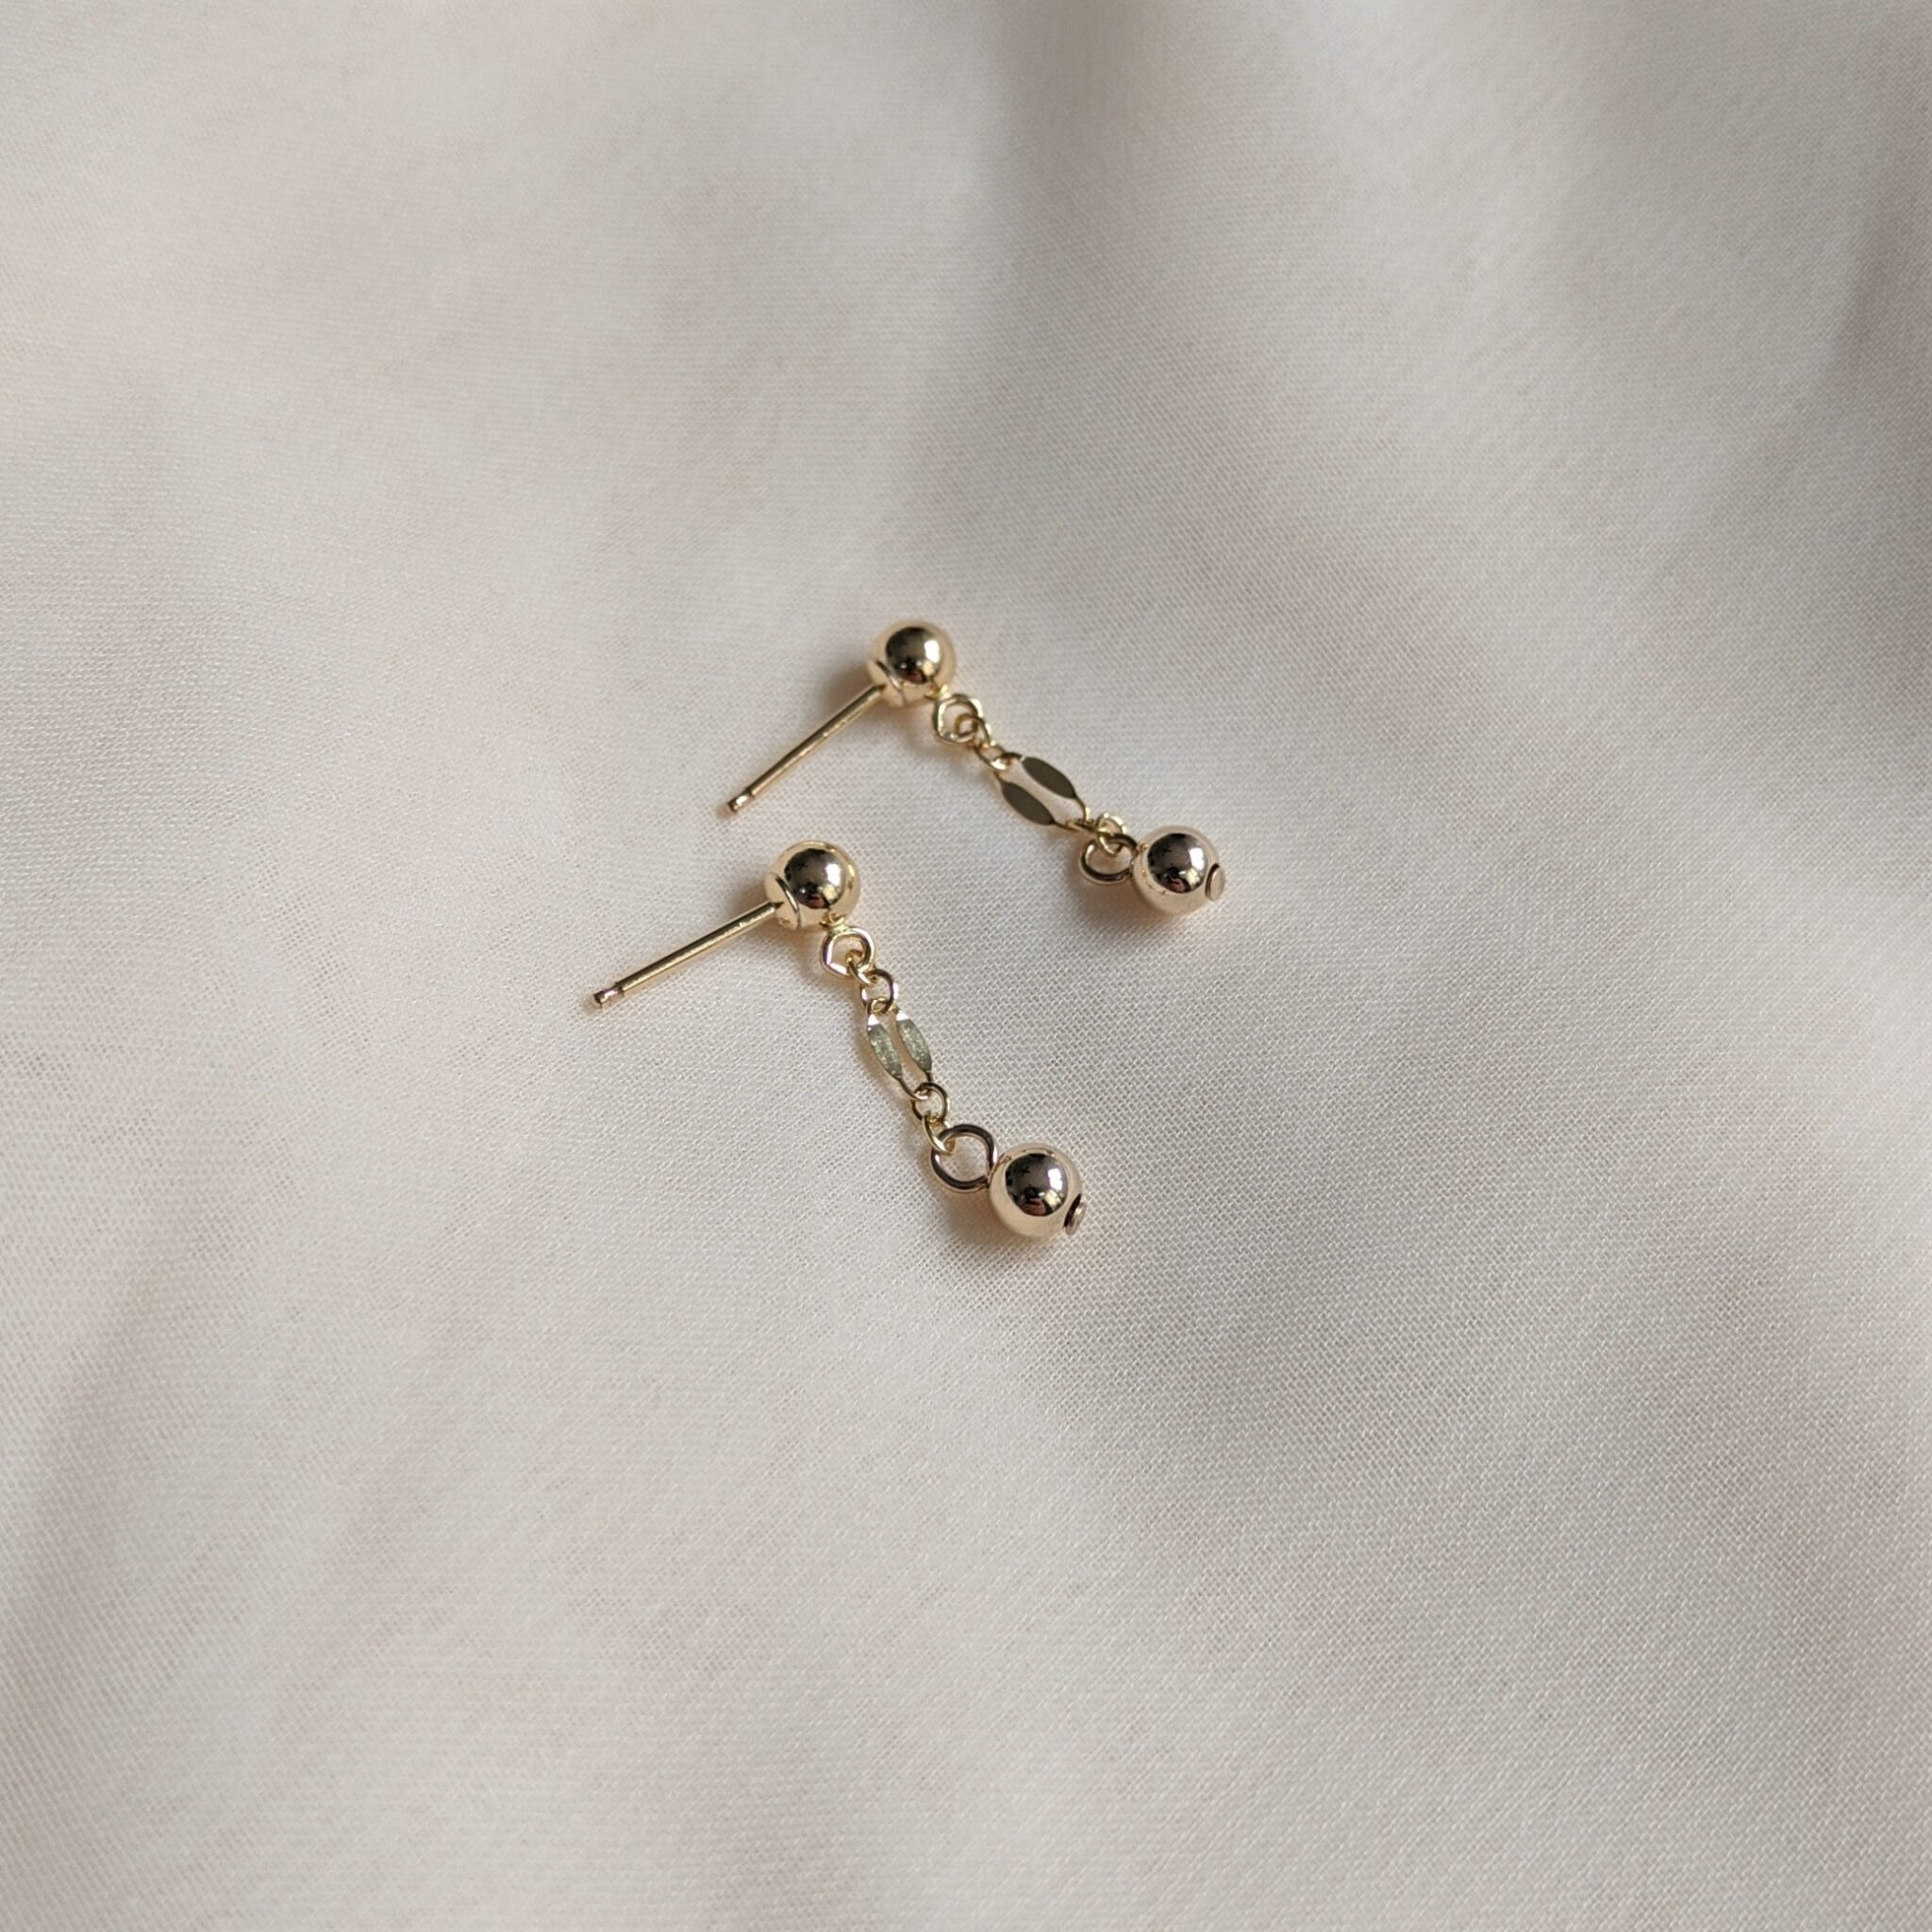 Two Bead Drop Stud Earrings In Gold Filled By Little Hangings